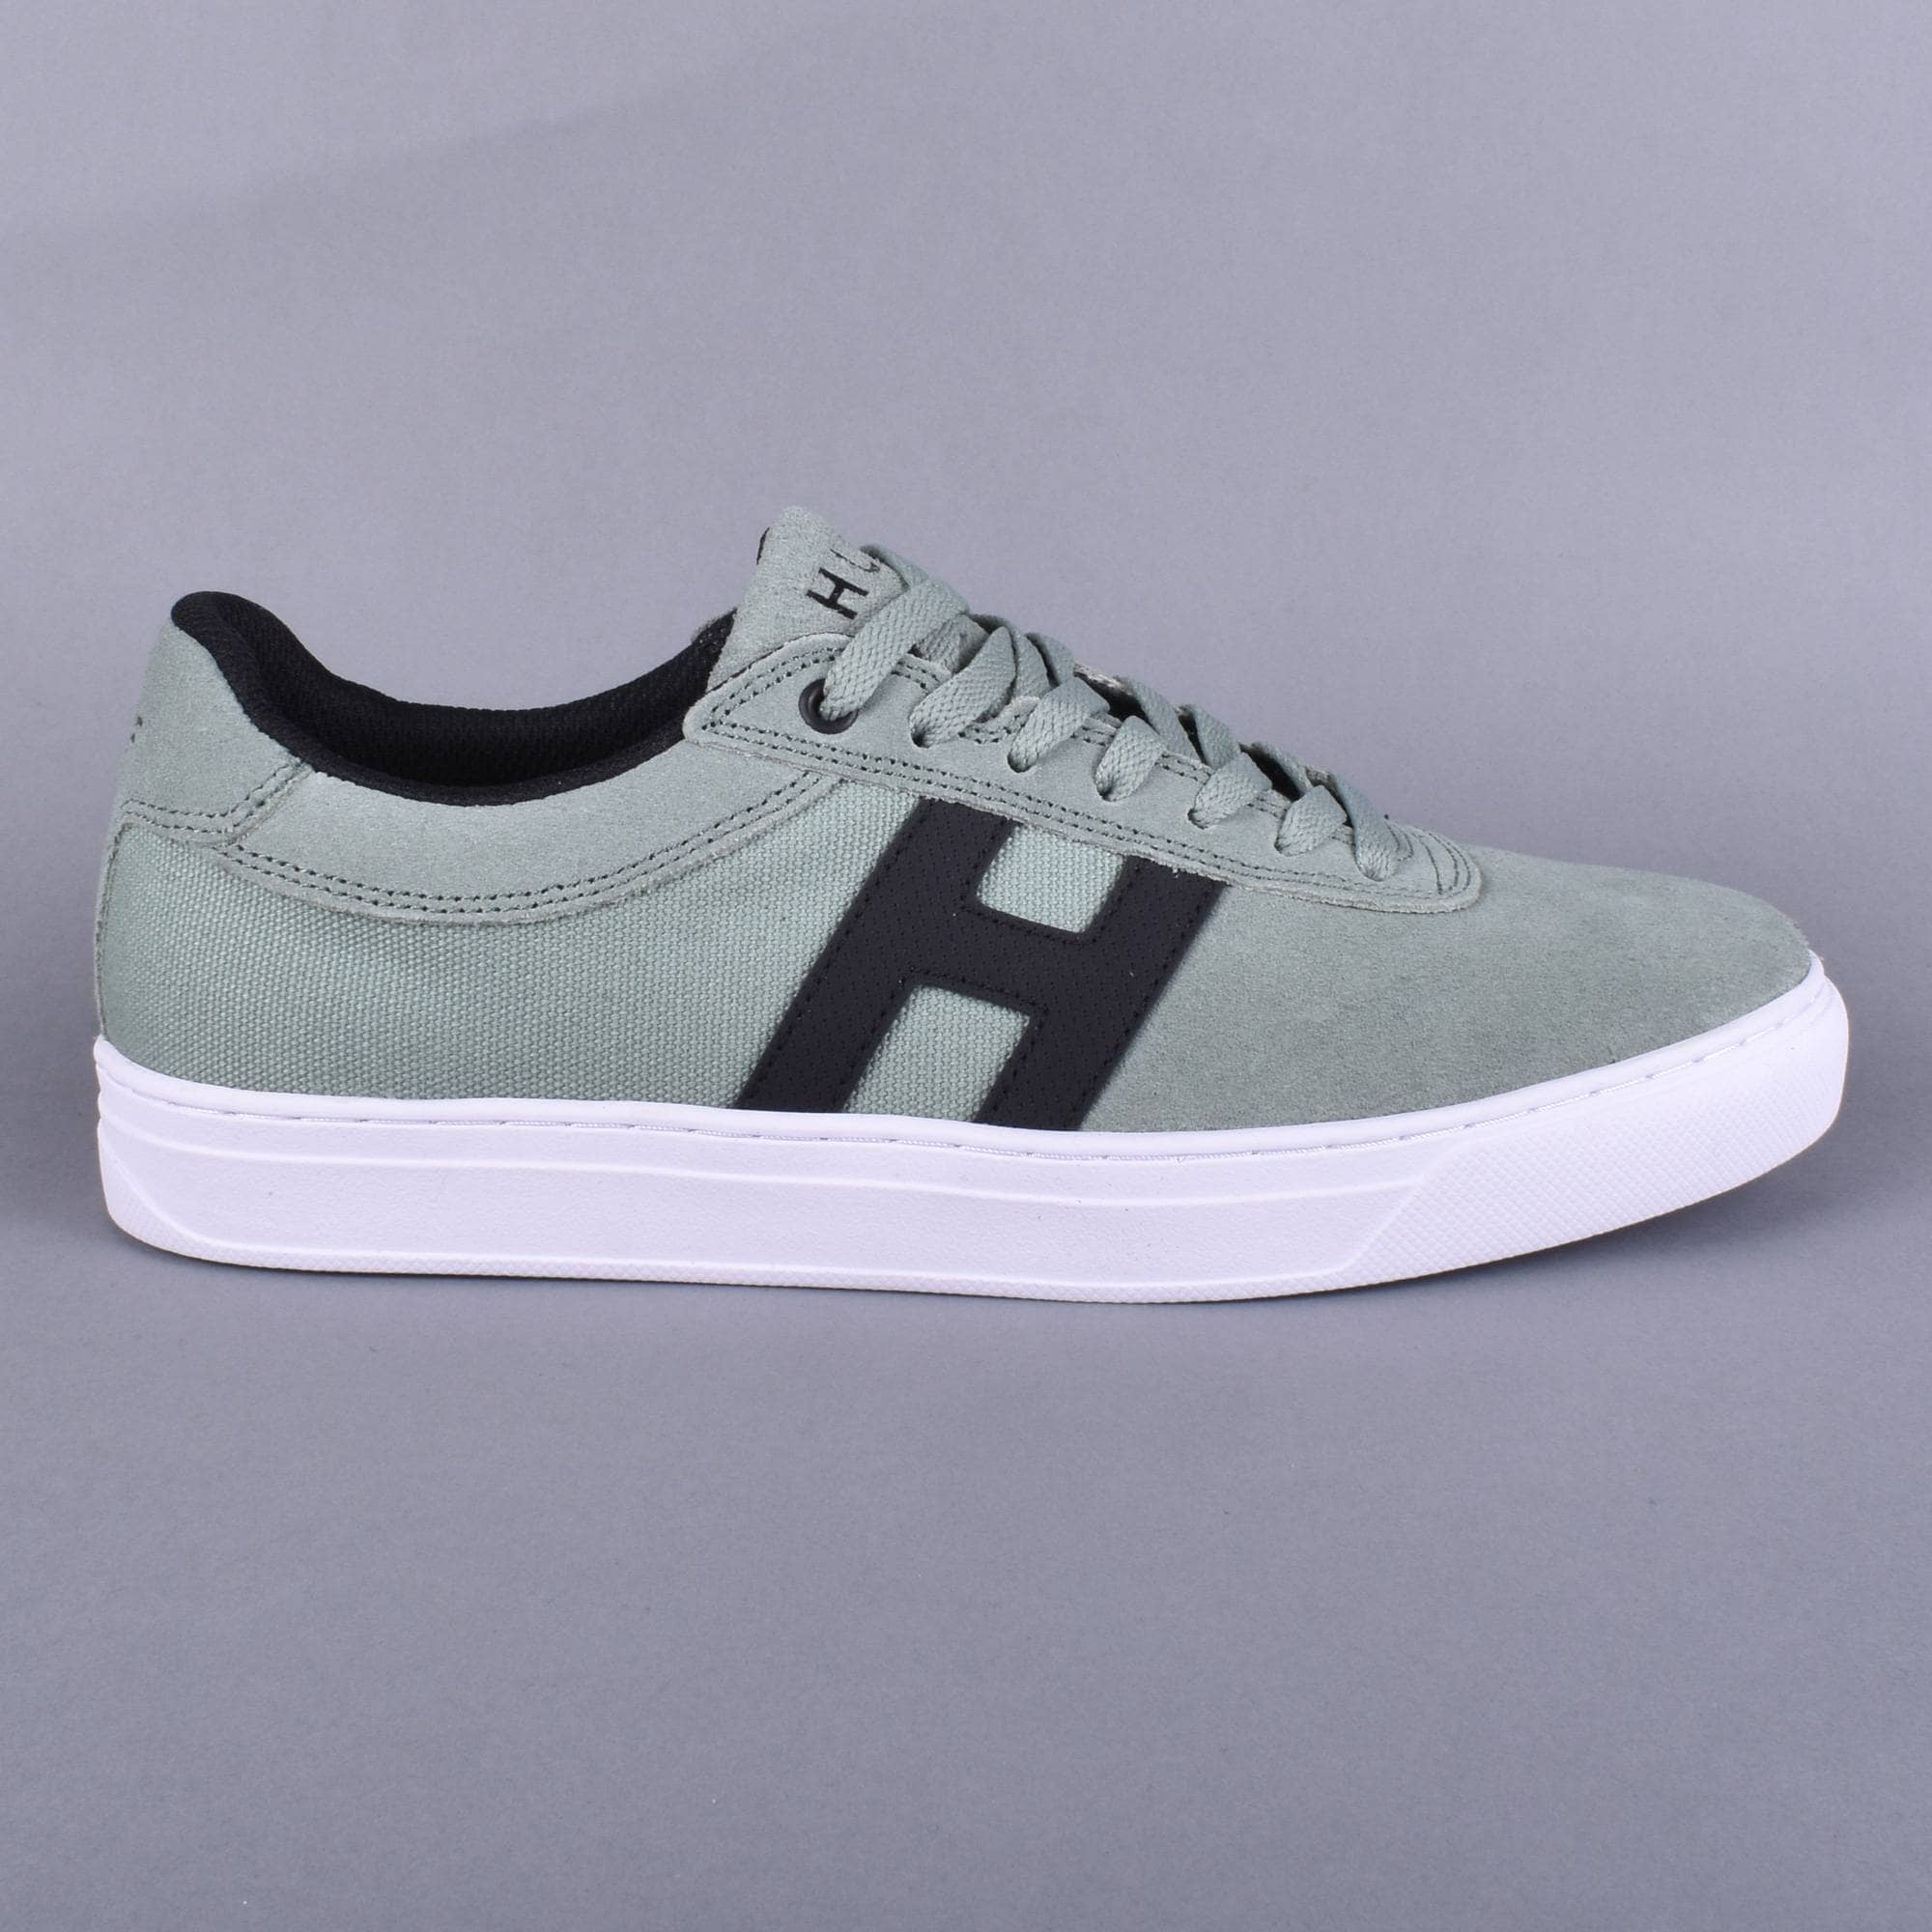 HUF Soto Skate Shoes - Lily Pad Green